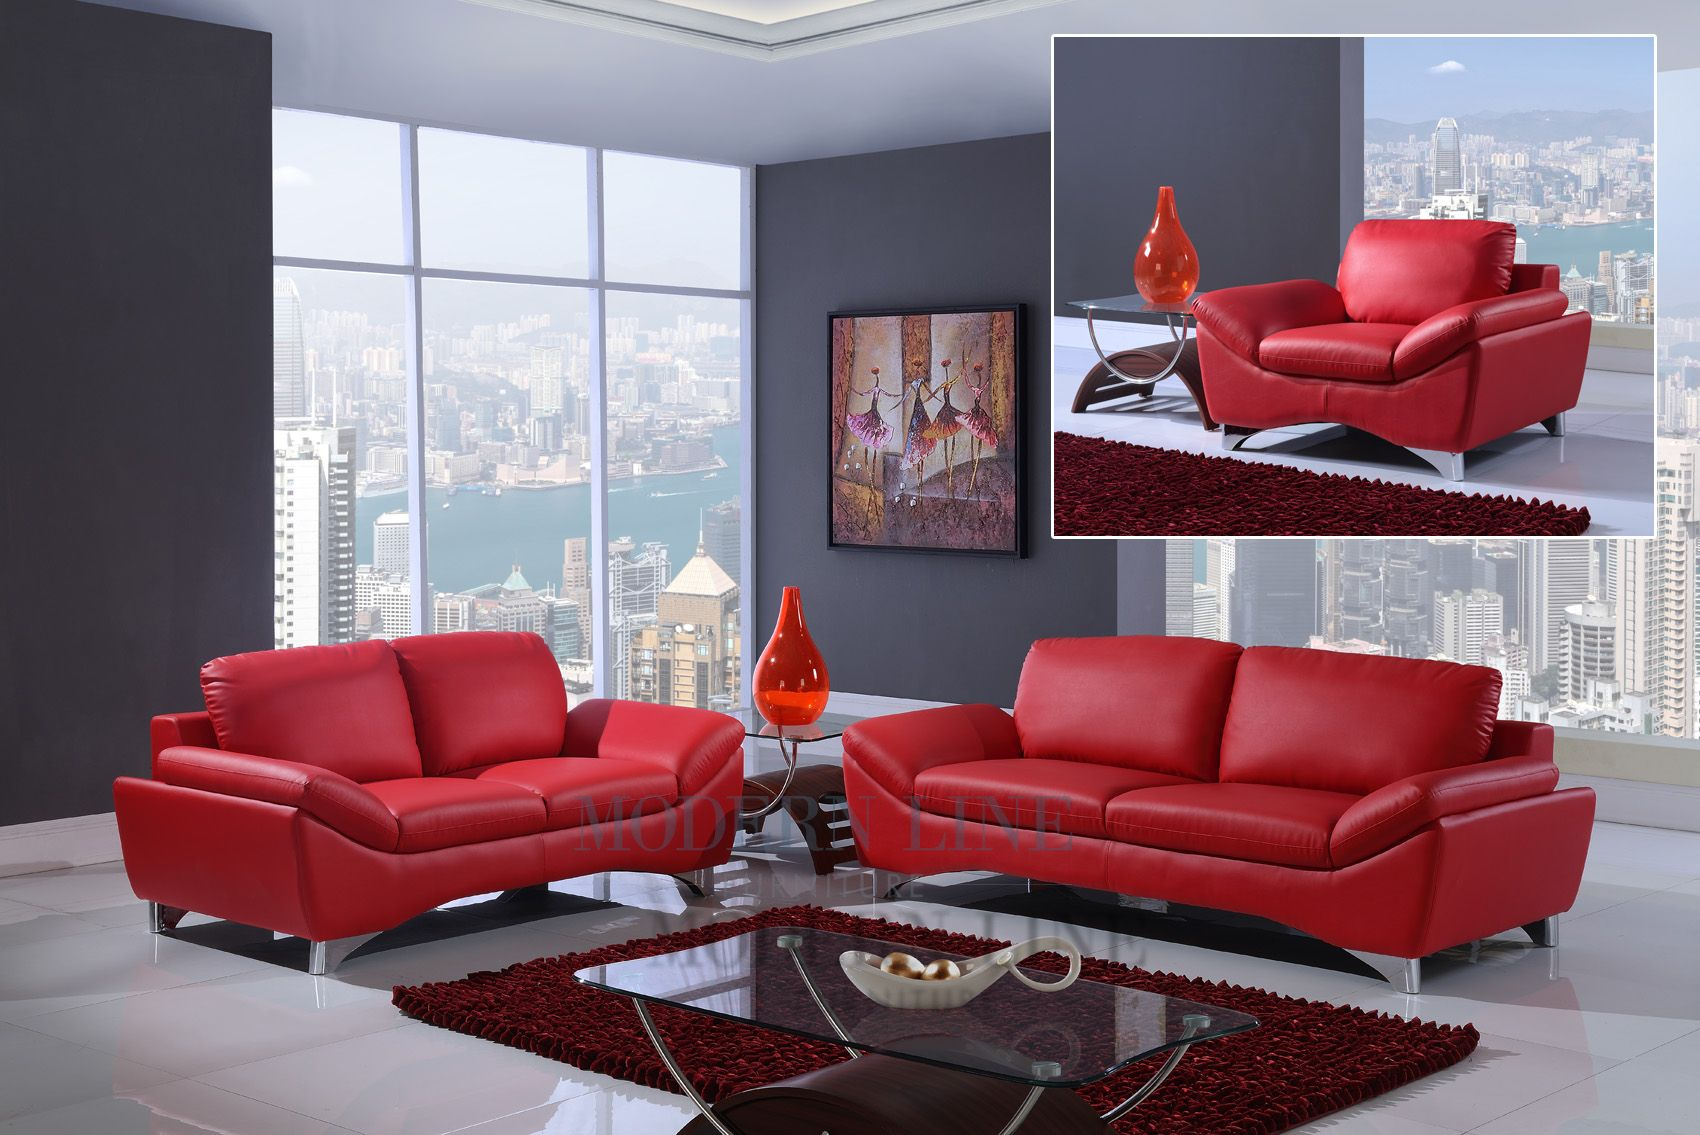 Modern Red Leather Set Of Sofa Loveseat And Chair 43 Gif 1 700